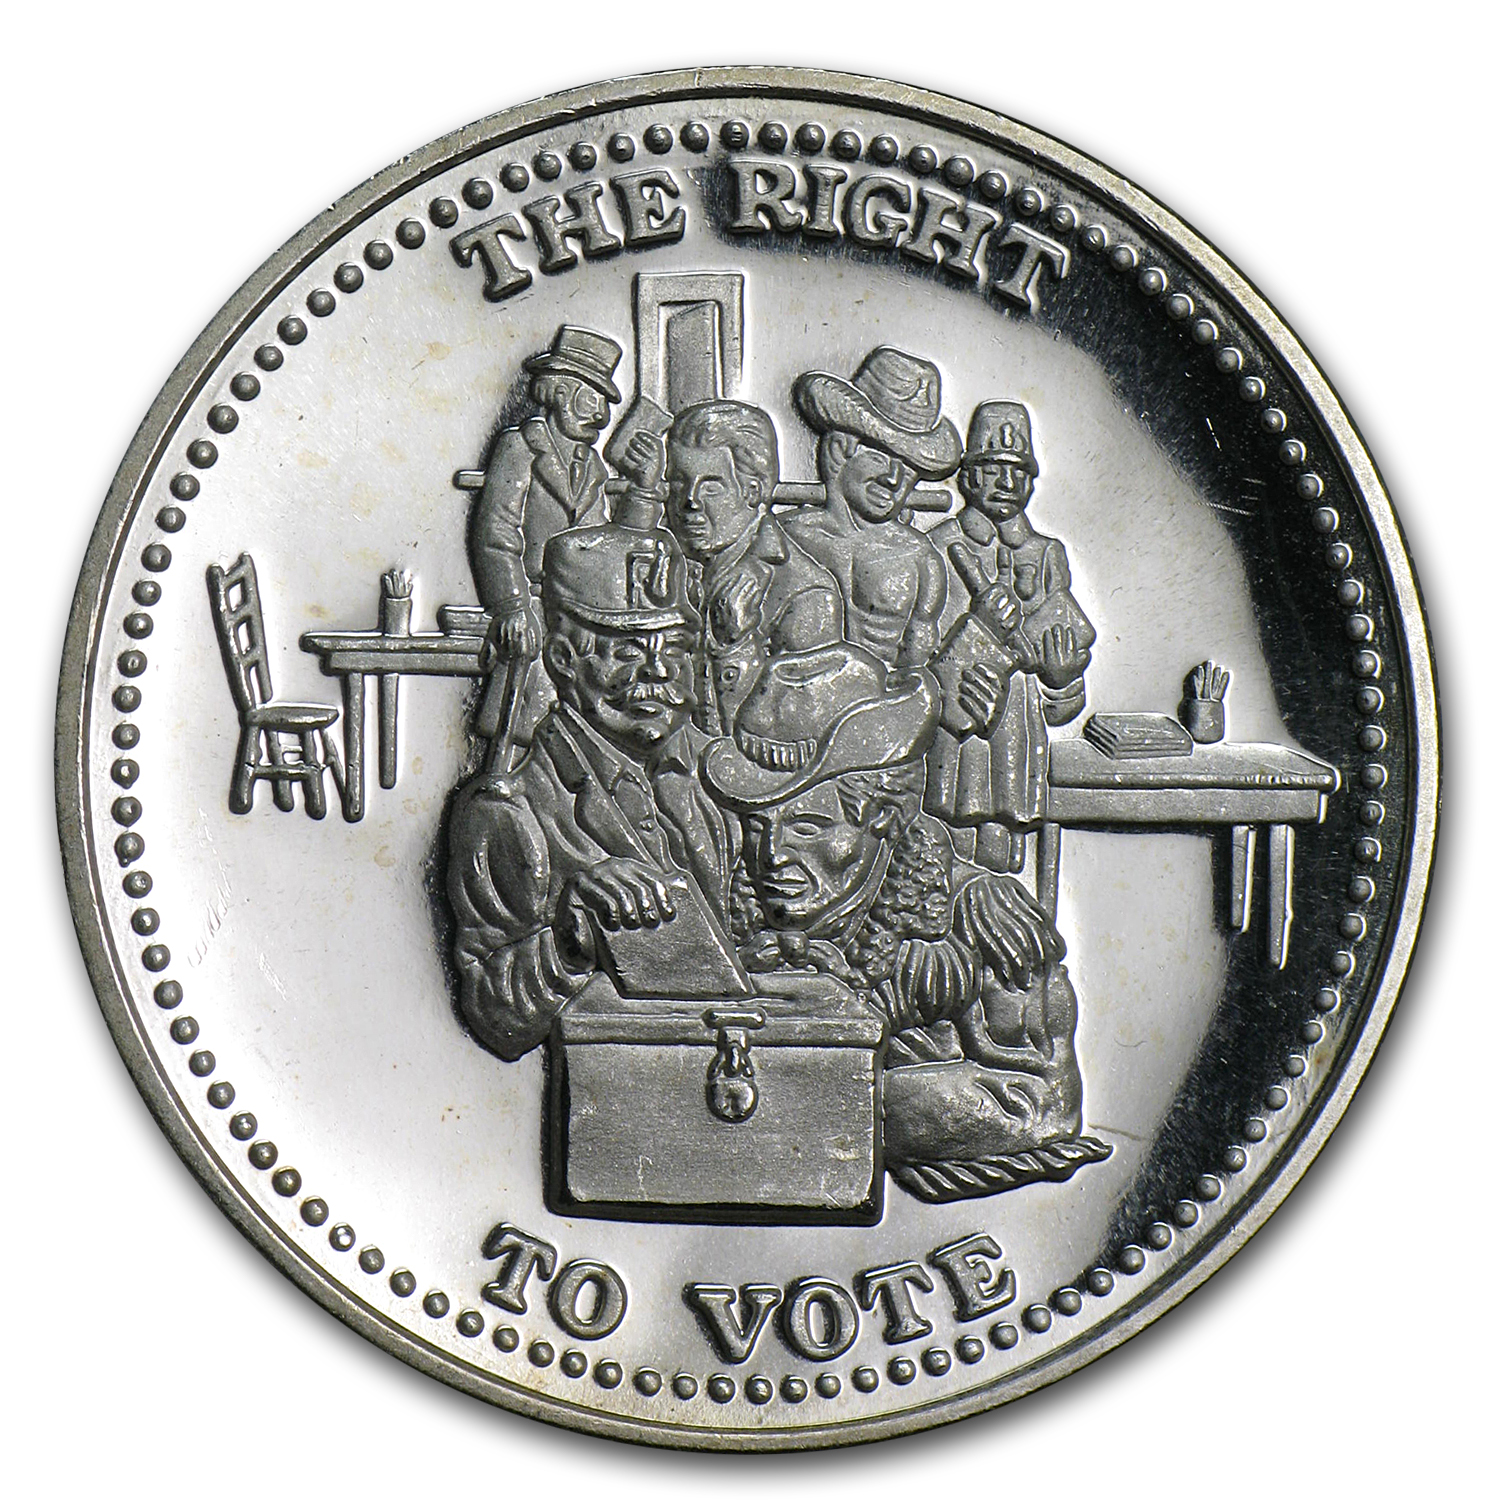 1 oz Silver Round - Johnson Matthey (Right to Vote)